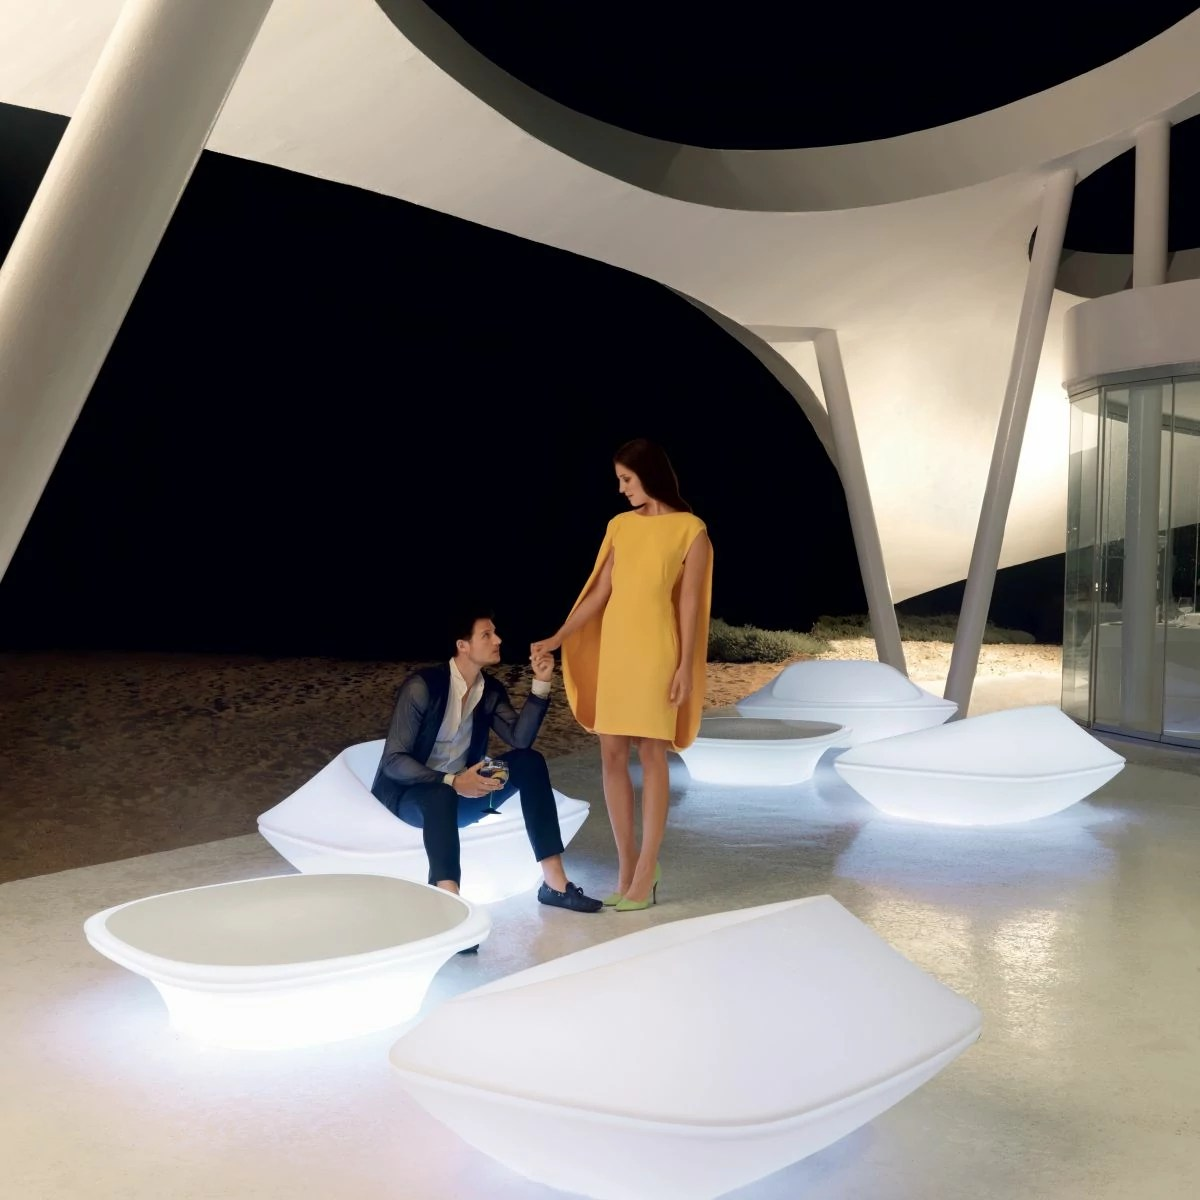 Mobilier Exterieur Original Fauteuil Original And Design Led Ufo Vondom Zendart Design